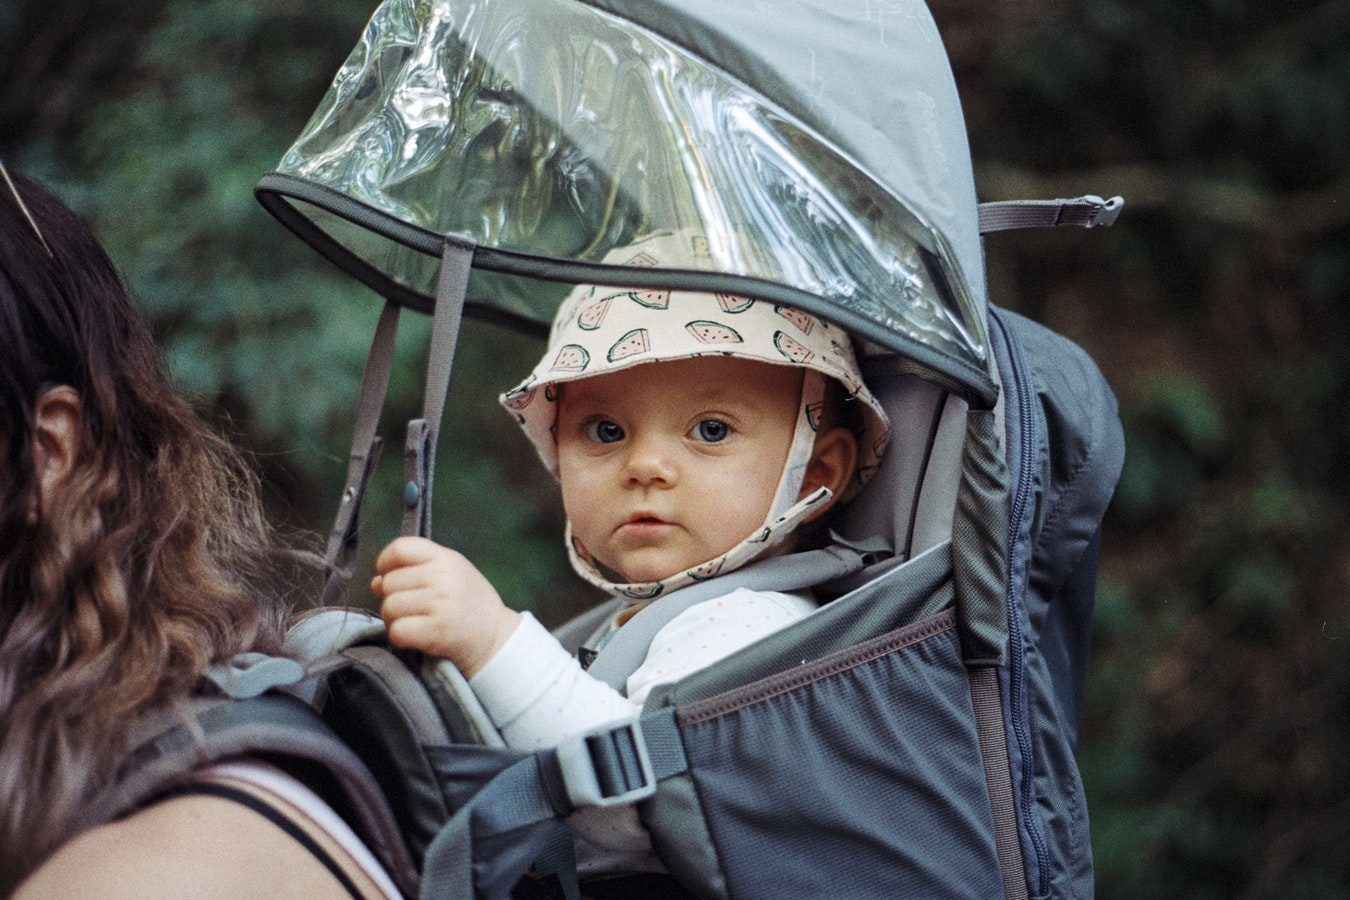 What to Expect When RVing with a Baby